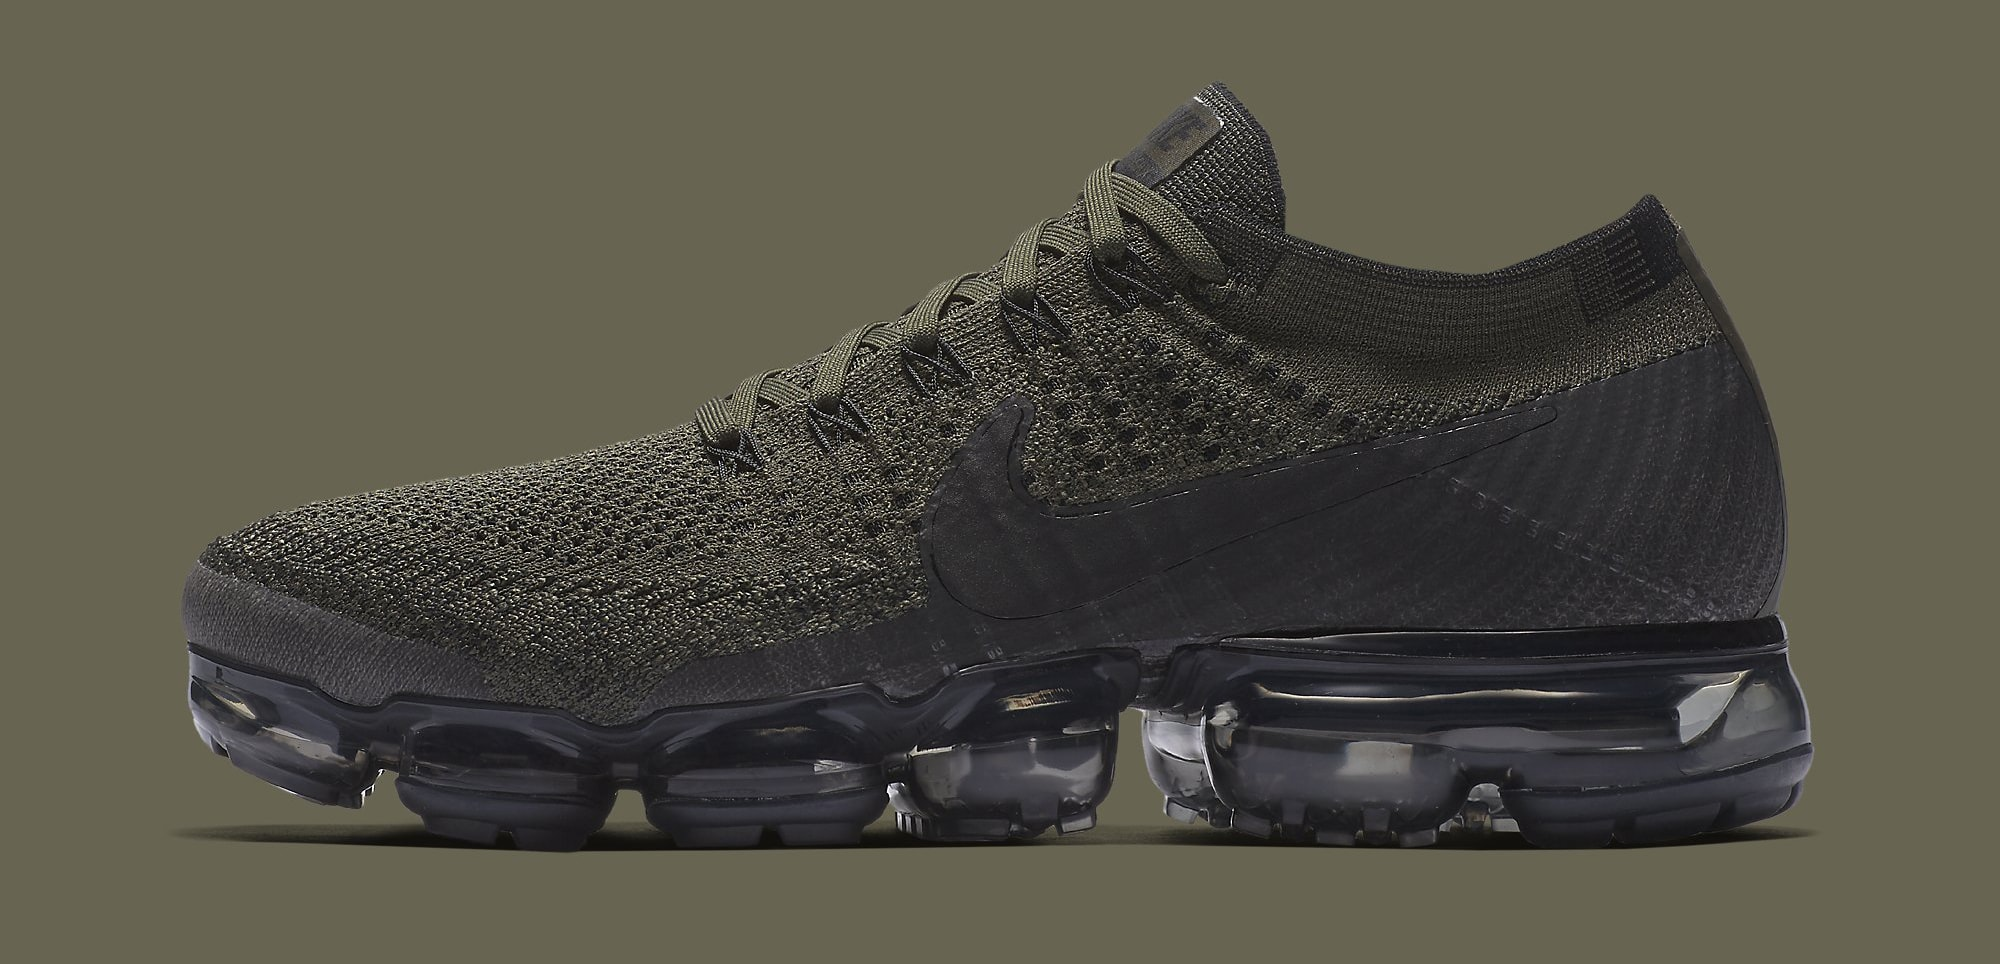 Nike Air Vapormax Asphalt Unboxing & On feet look